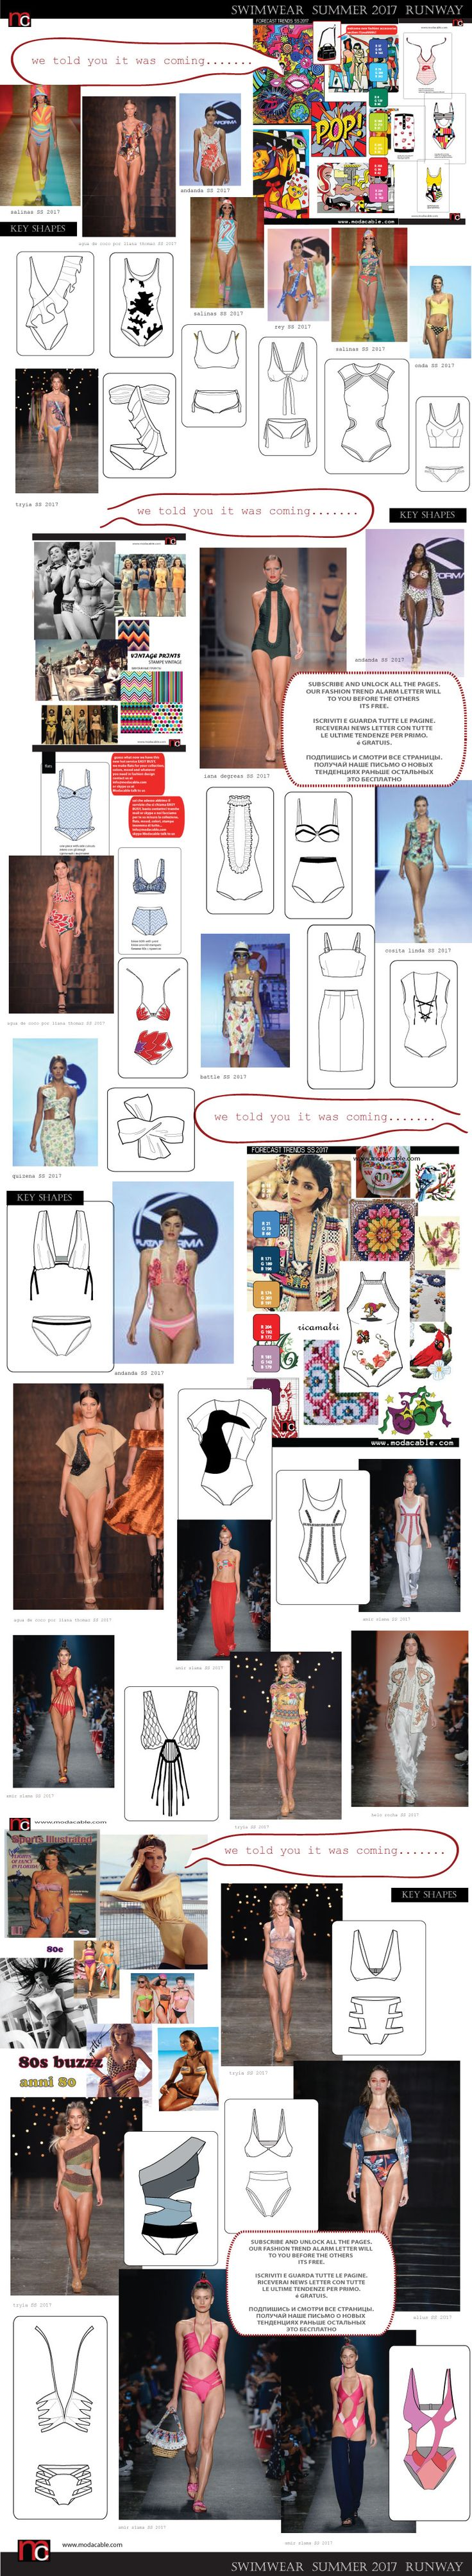 swimwear fashion trends 2017 and we told you about them long agoooo.... subscribe to see all the trends before the season only at www.modacable.com. its free